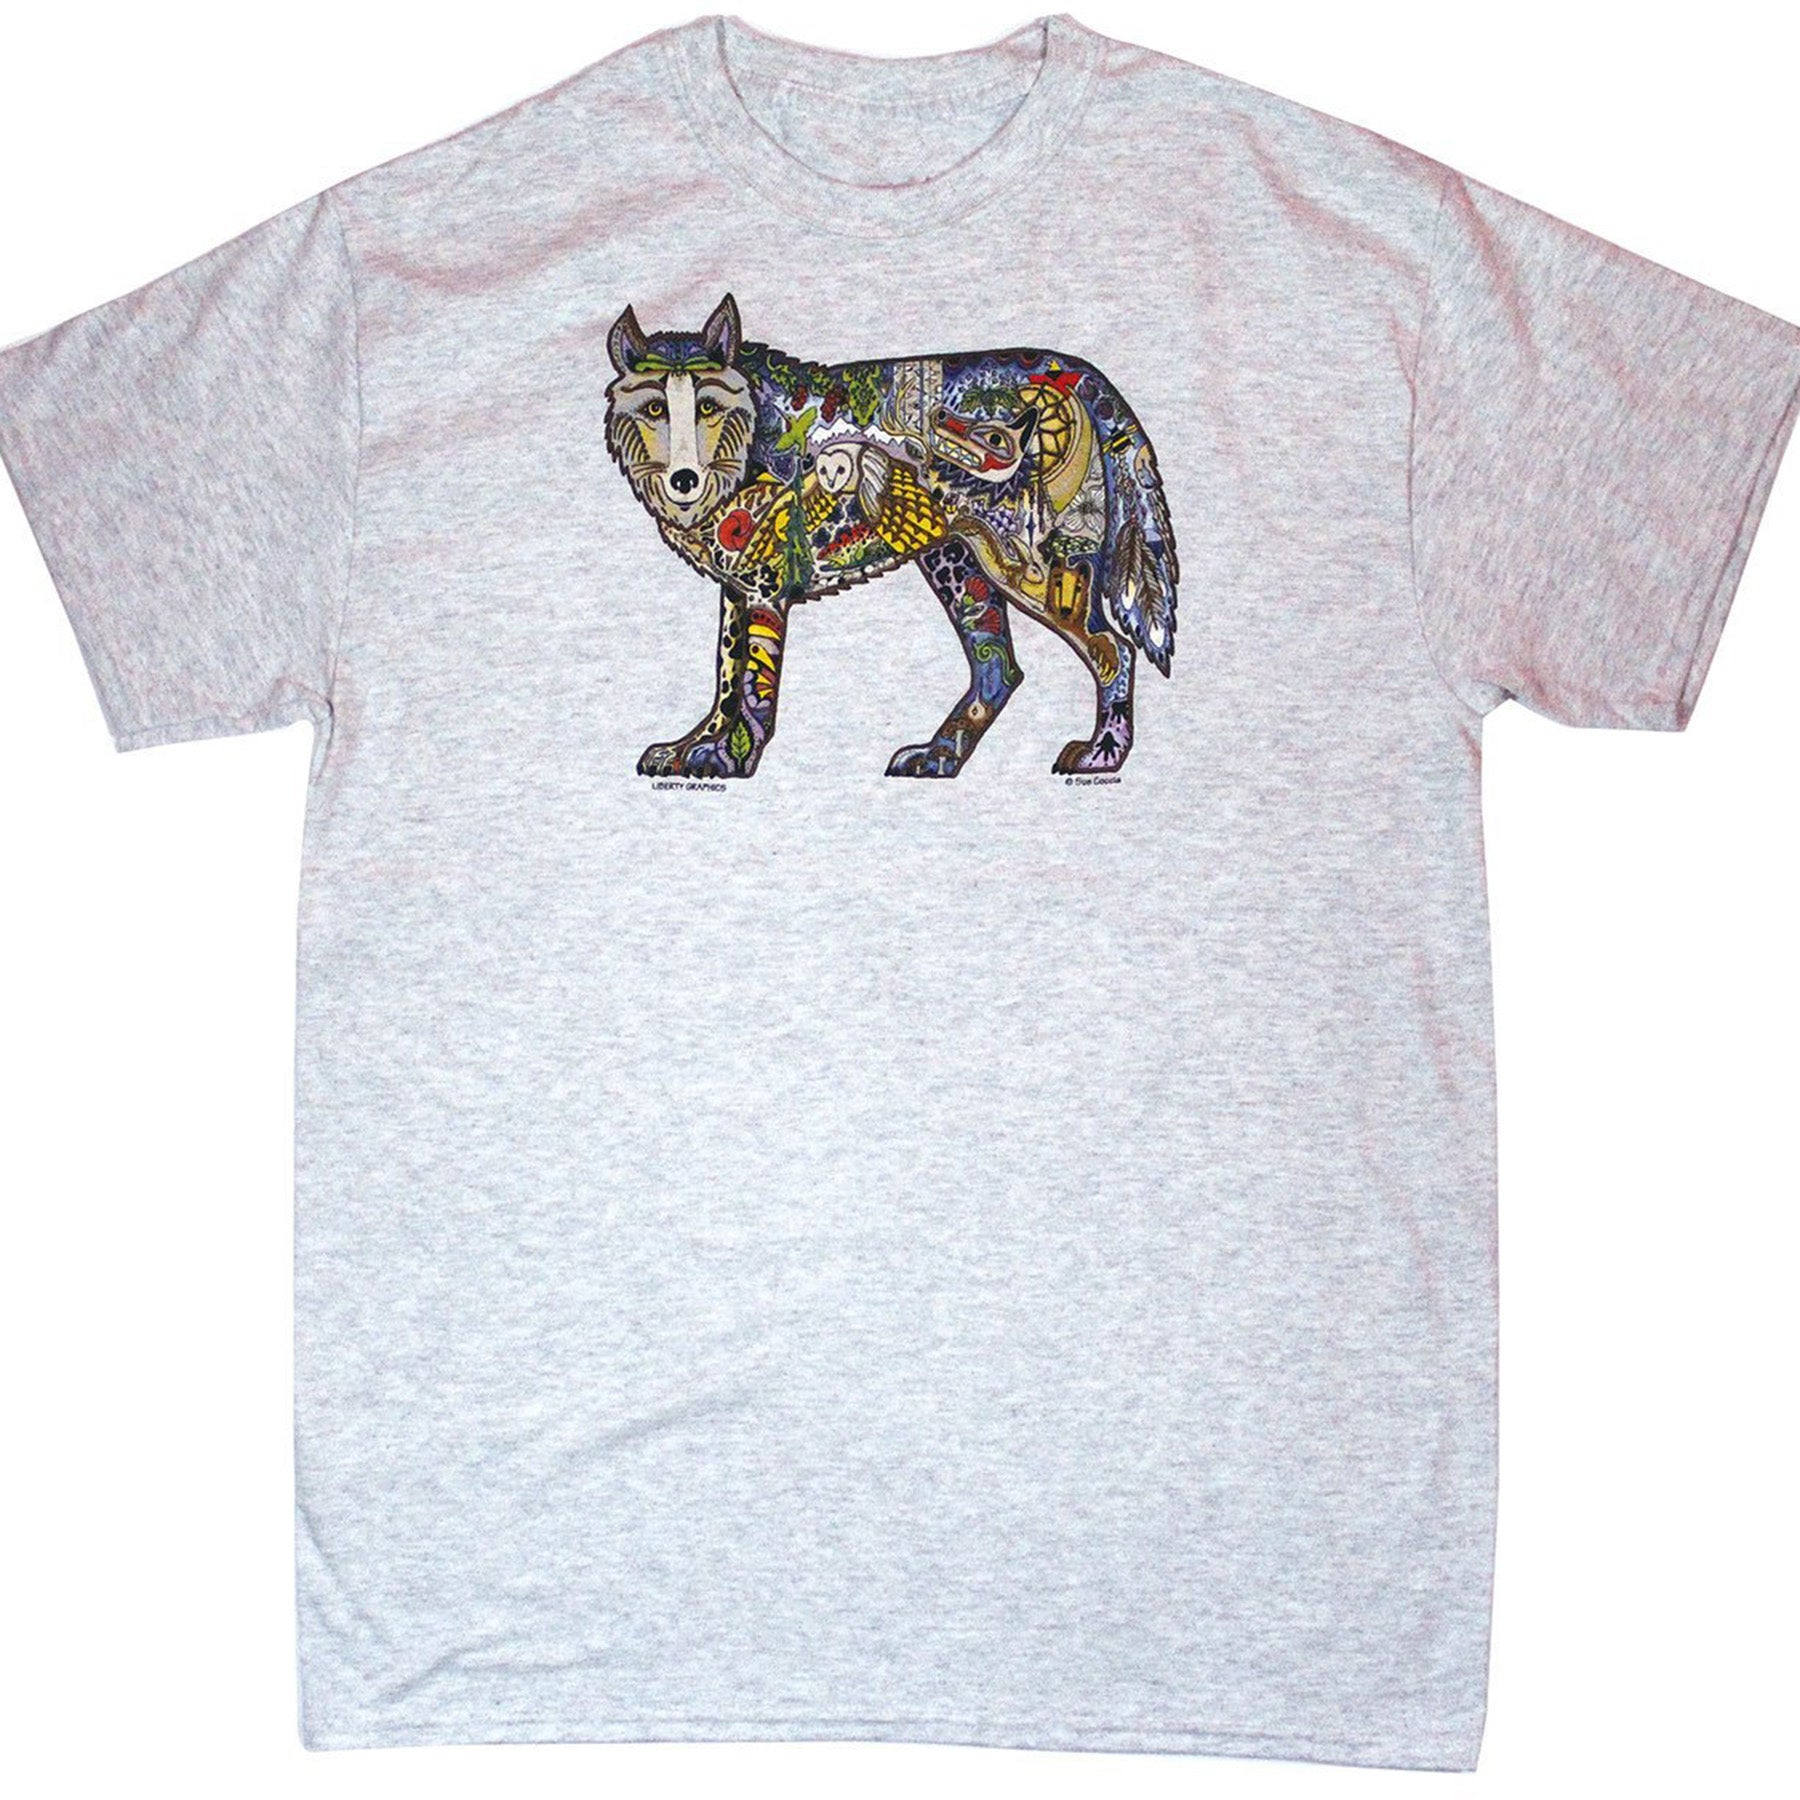 wolf print t shirt showing the entire shirt